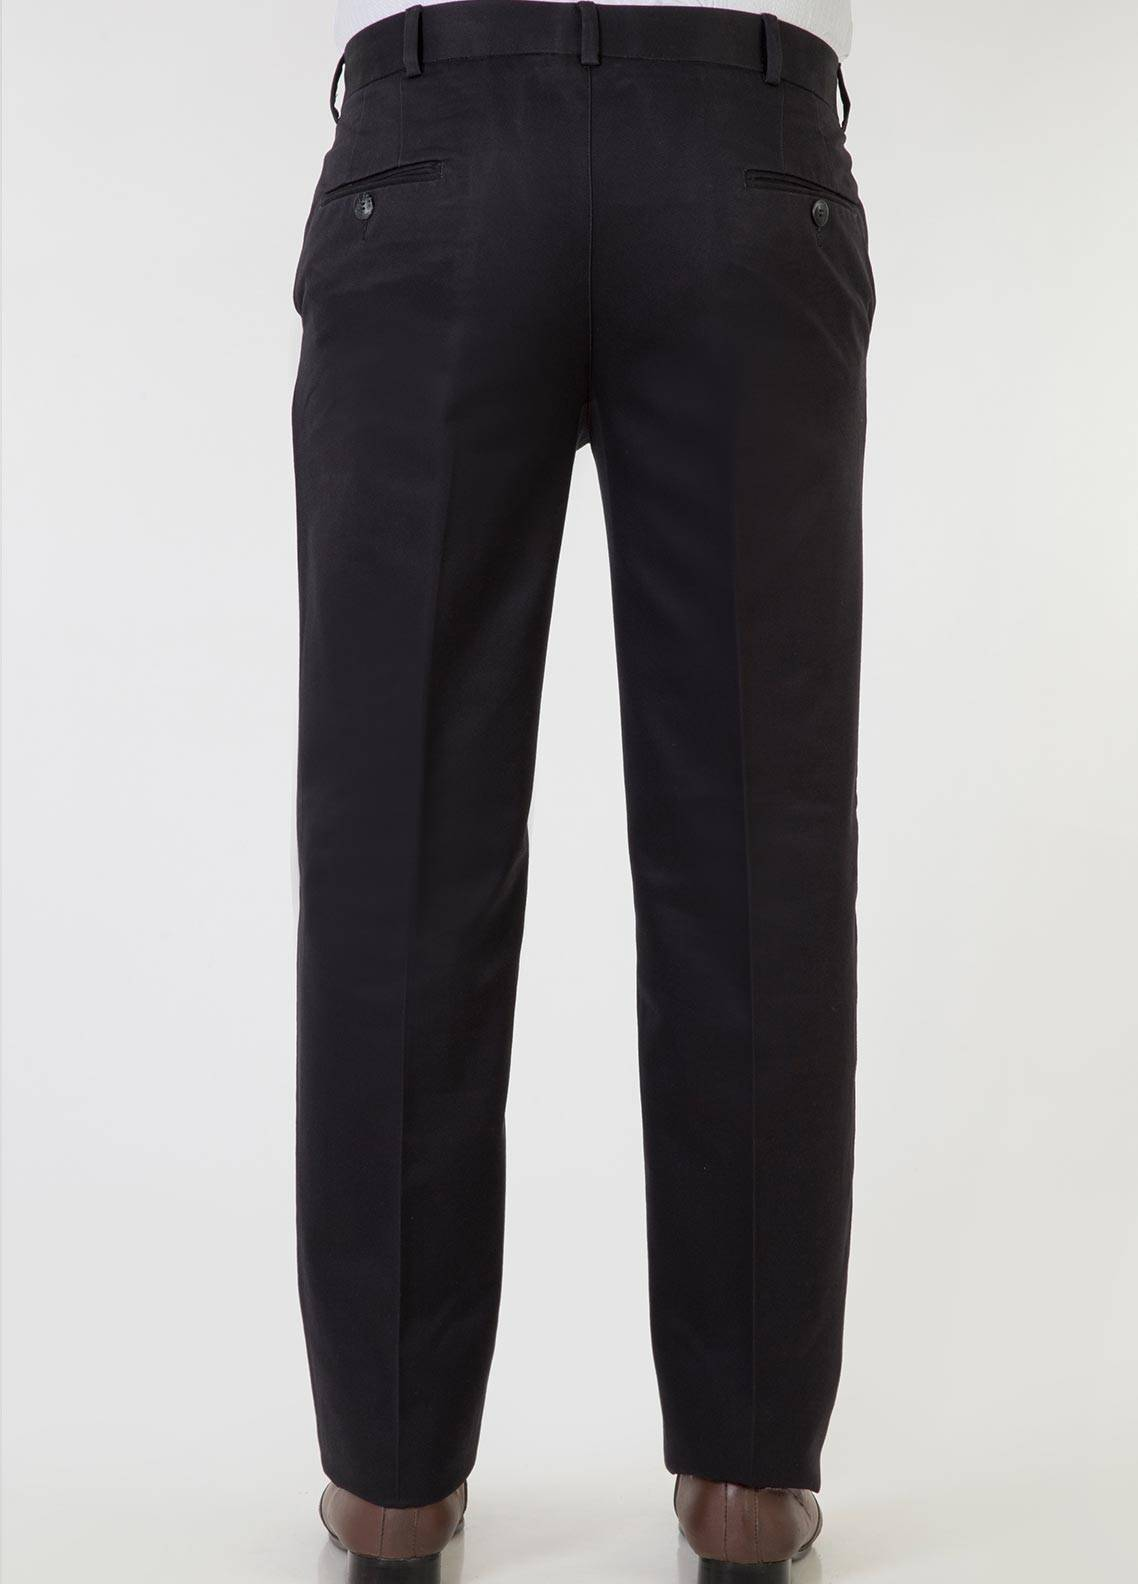 Bien Habille Cotton No-Iron Men Trouser -  Comfort Fit Black